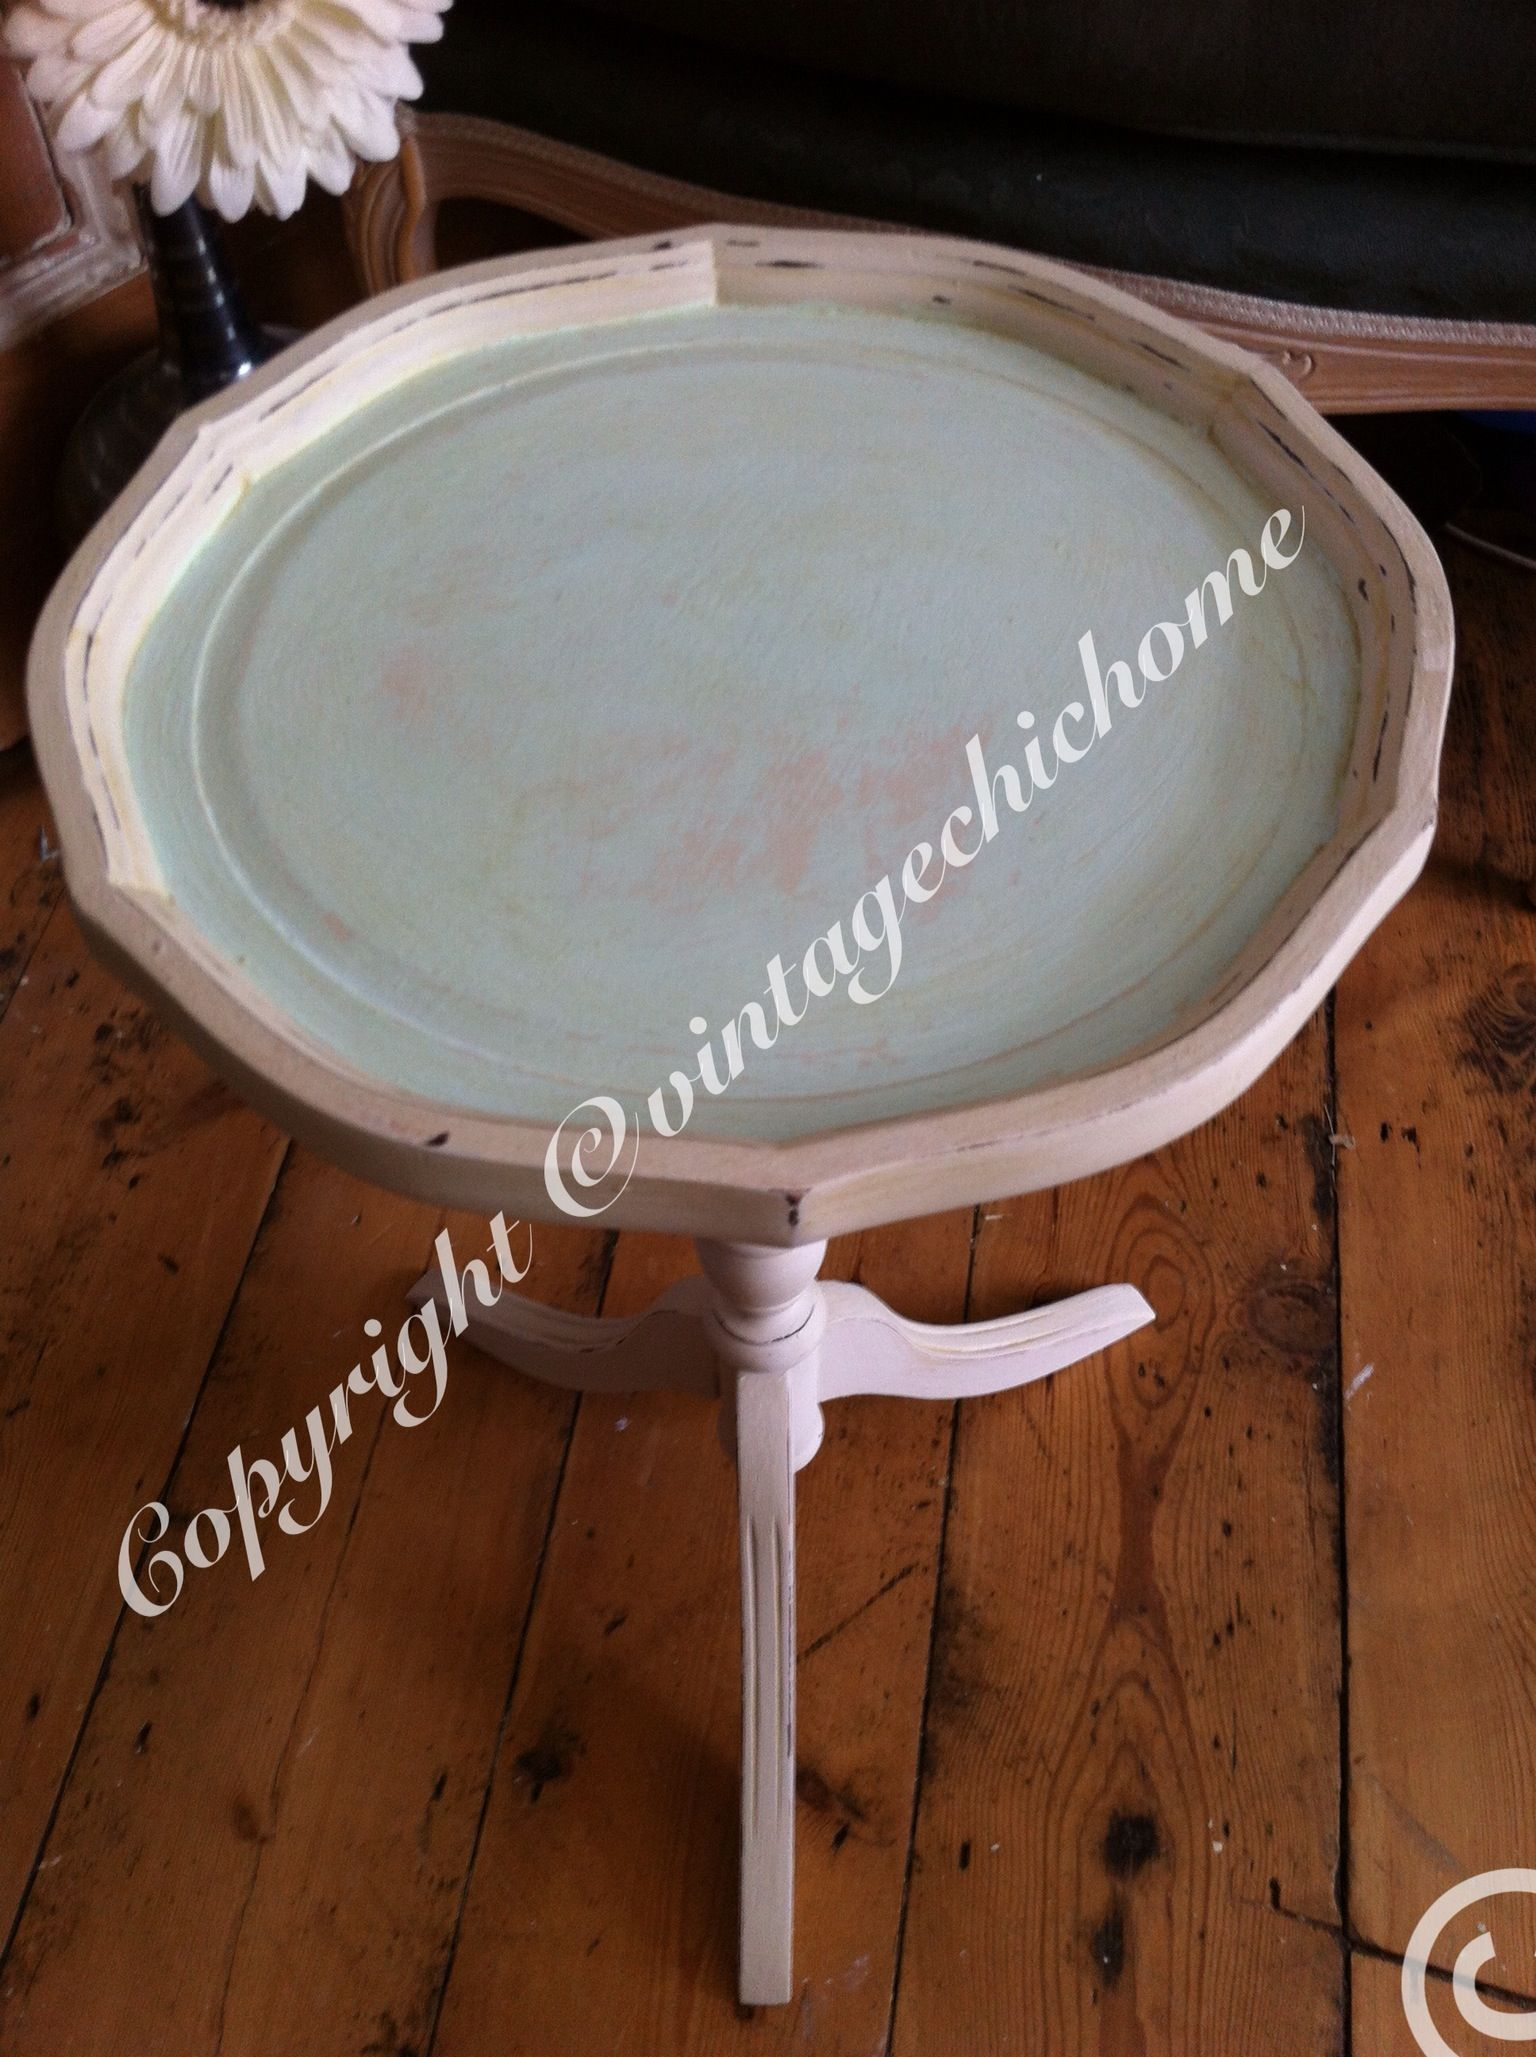 Shabby Chic Ornate Round Side Table With Scalloped Tray Duckegg Blue Top And Cream Pedestal Legs Chalk Paint Painte Drum Table Round Coffee Table Chic Home [ 2057 x 1536 Pixel ]